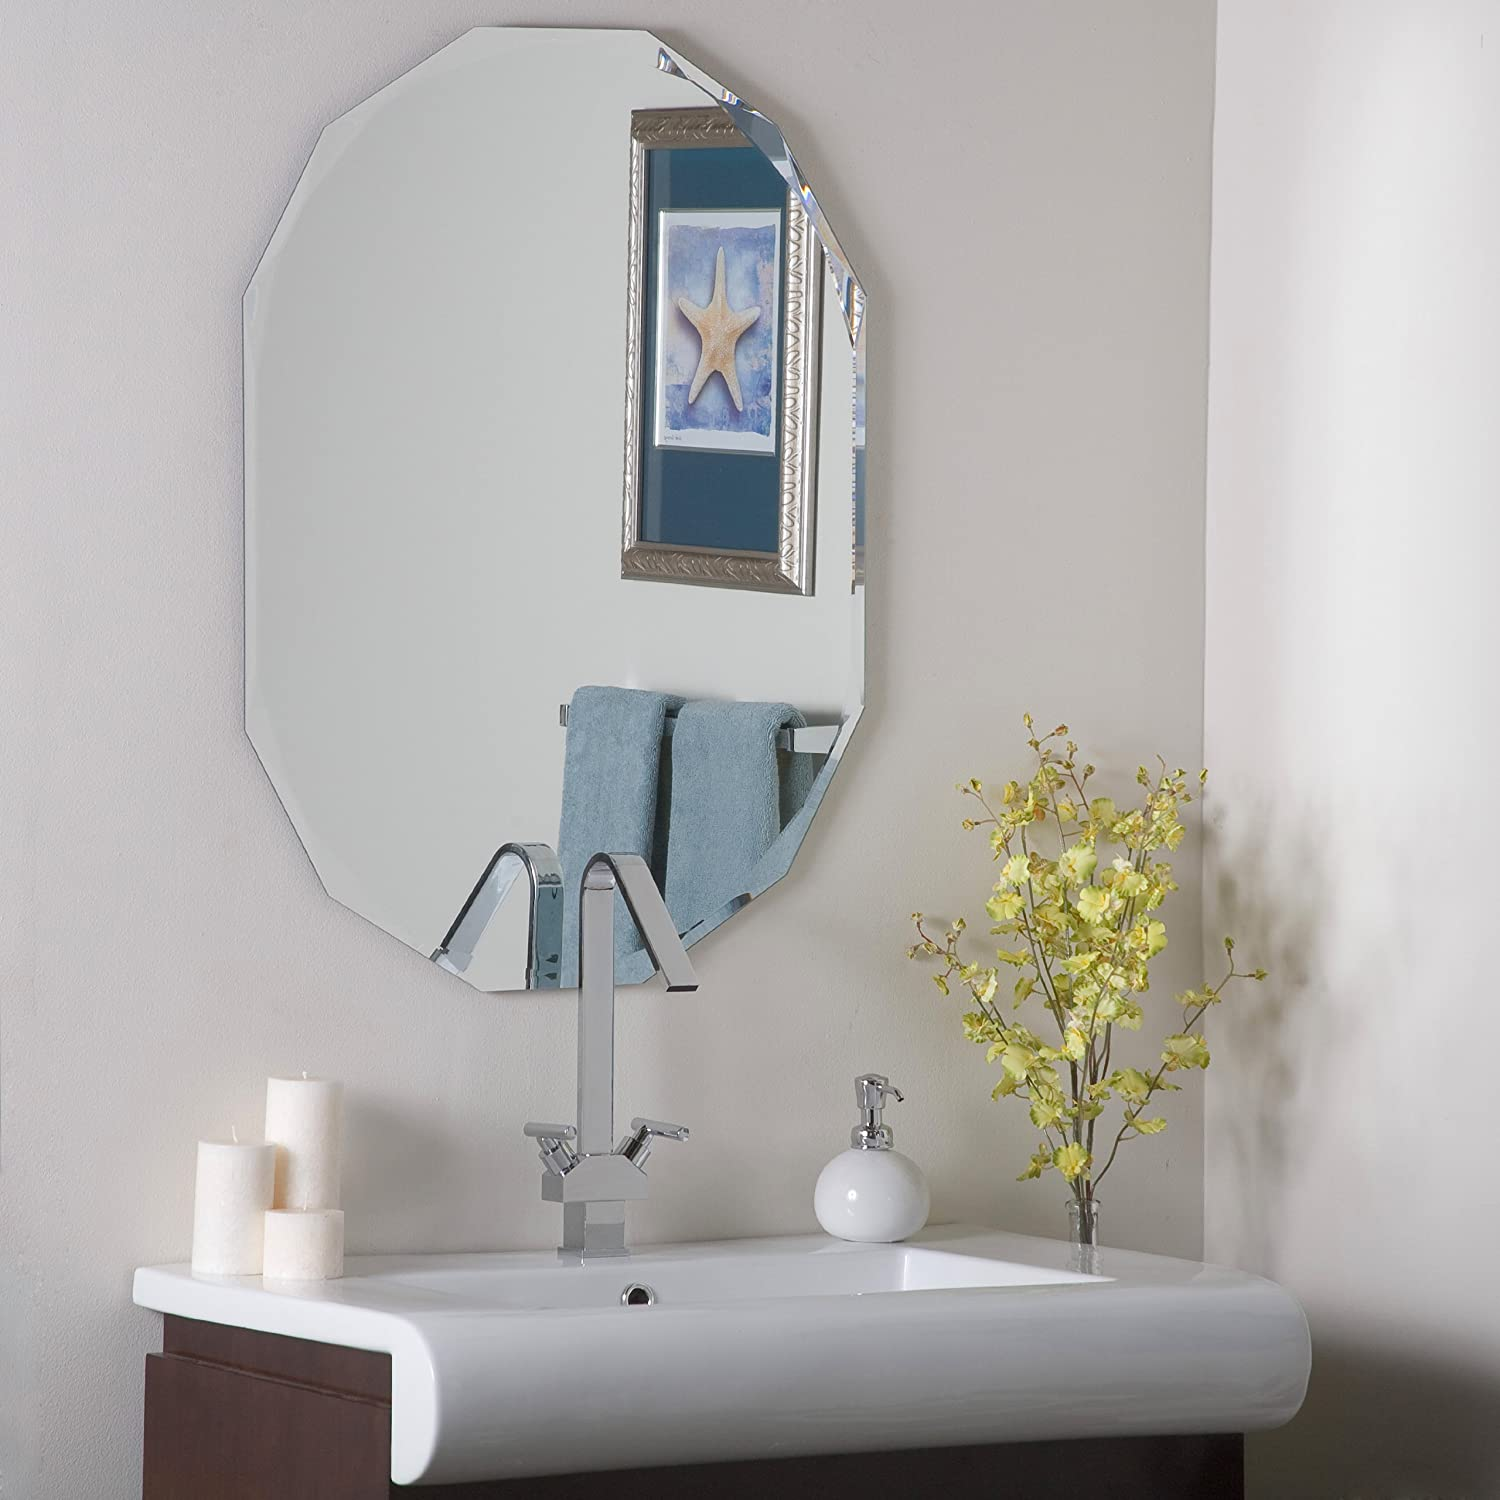 Amazon ascher cut frameless wall mirror home kitchen amipublicfo Image collections